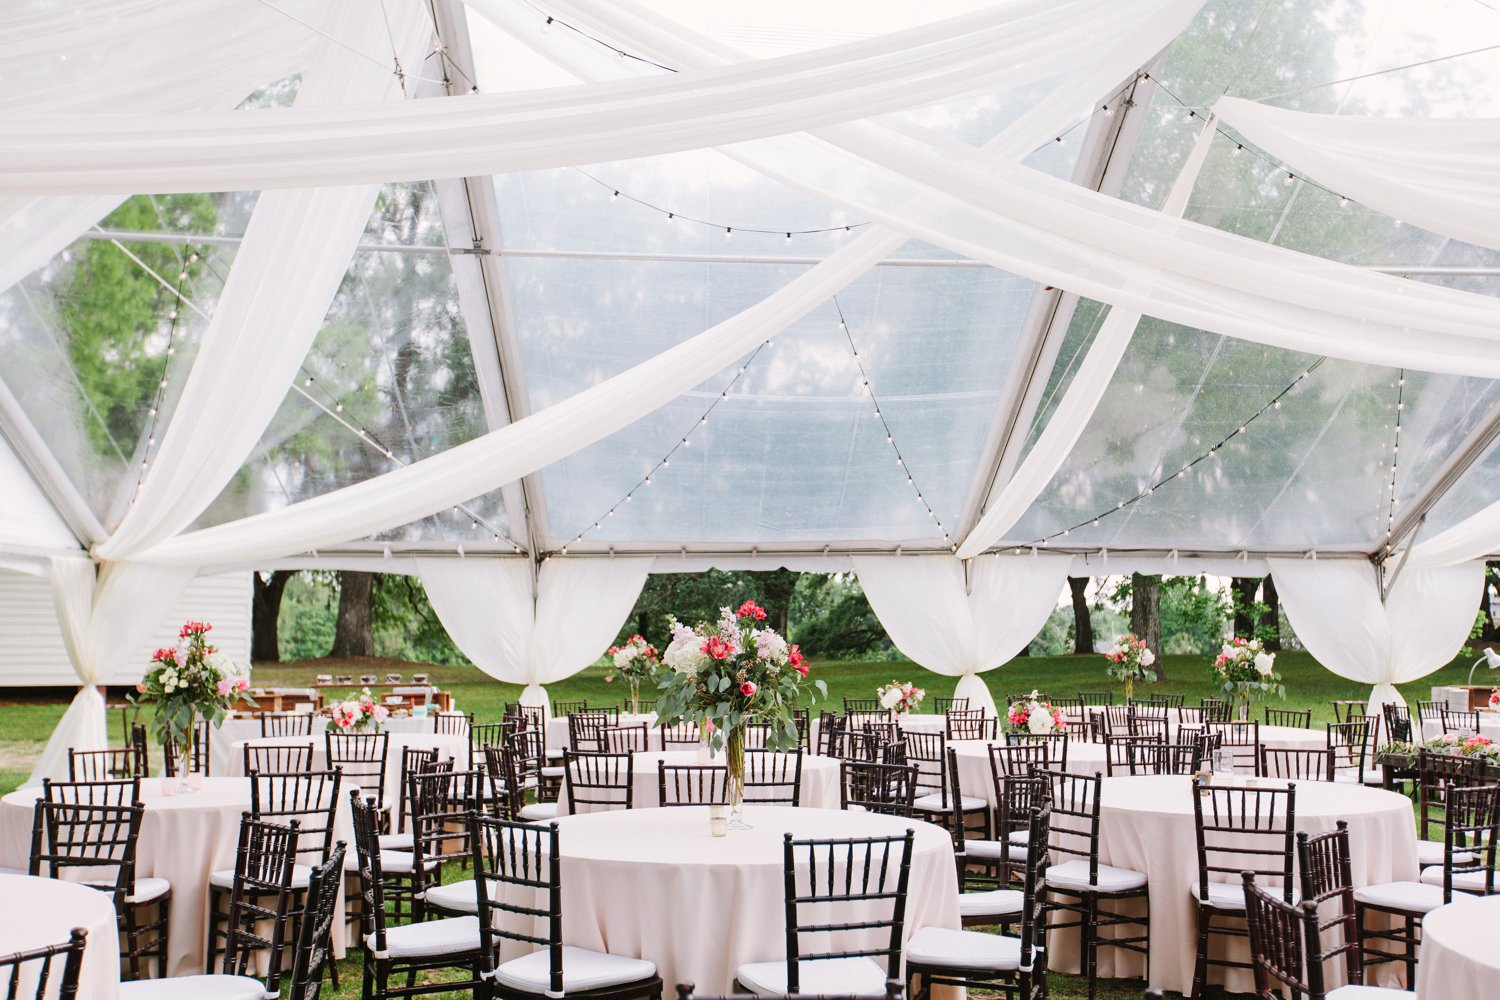 Lindsey_A_Miller_Photography_mcleod_plantation_wedding_charleston_south_carolina_clear_tent_spring_mod_events_063.jpg